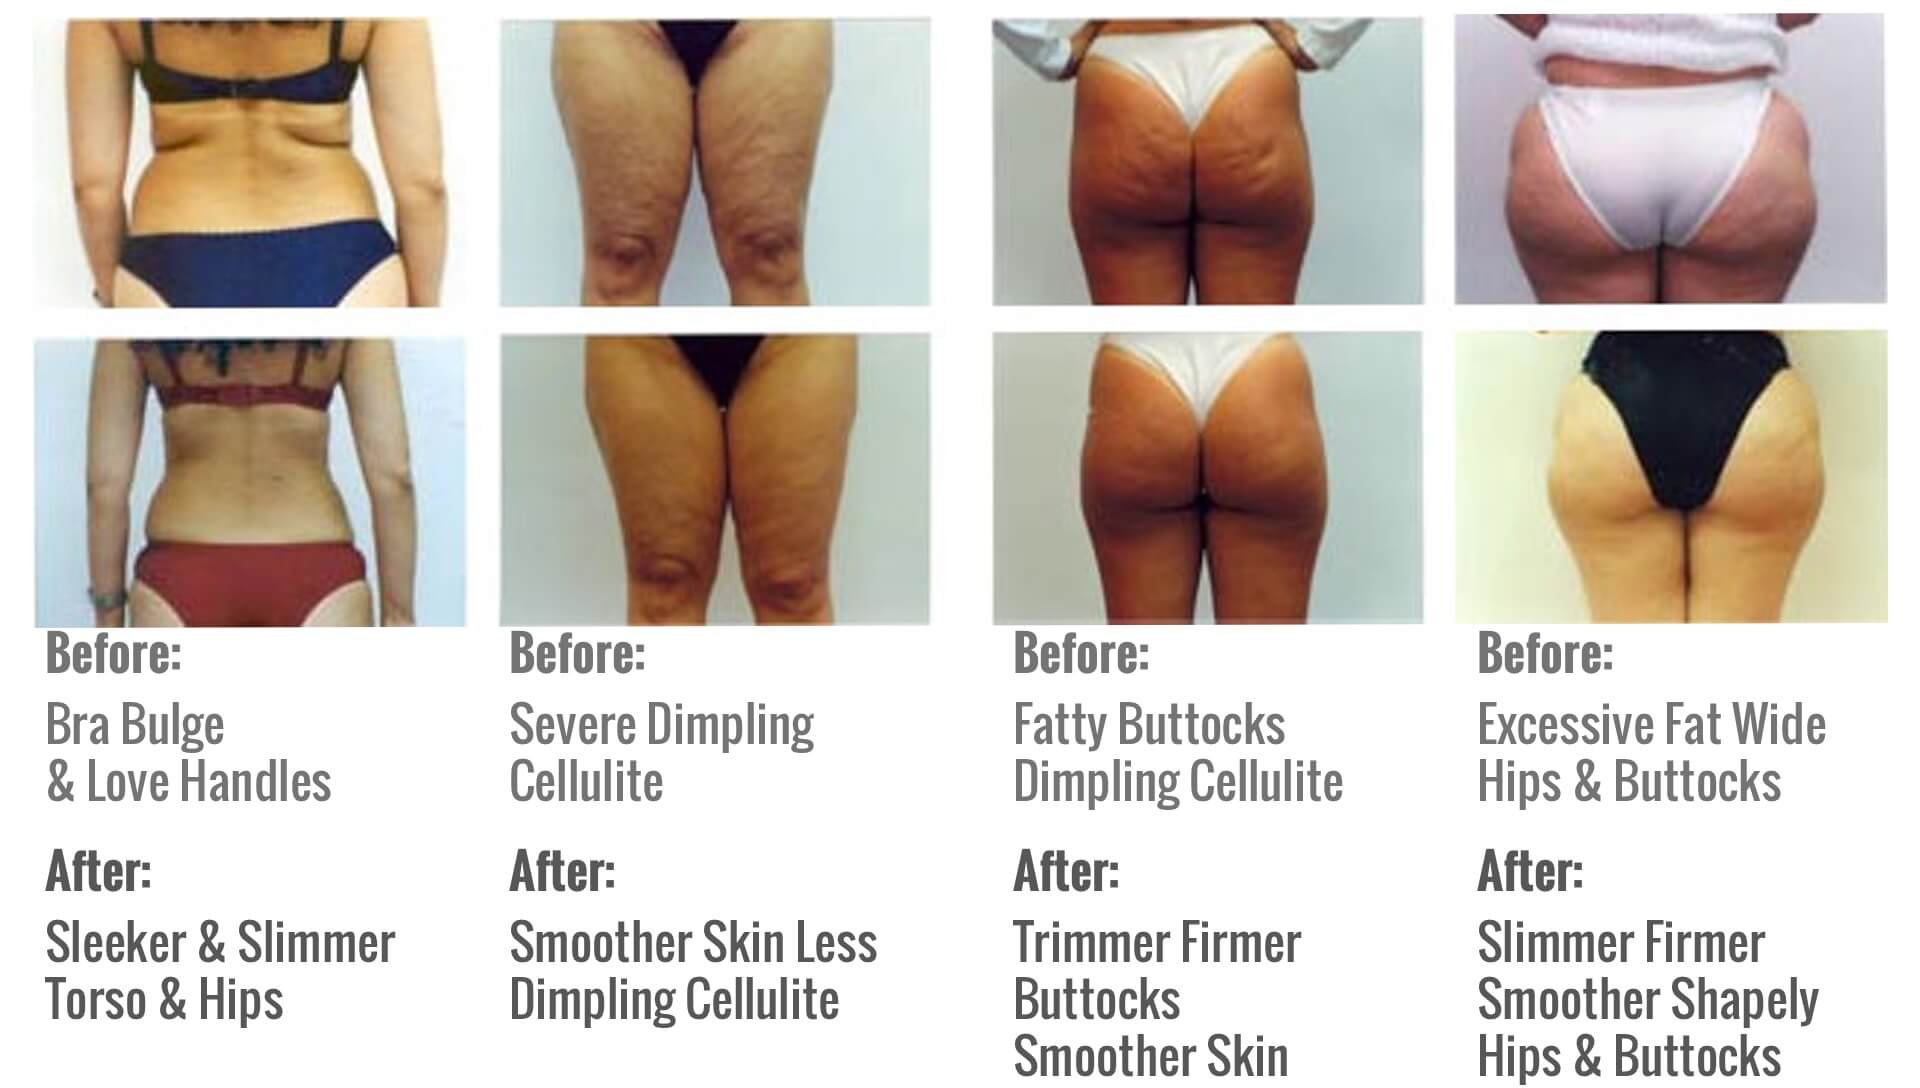 GetNaturopathic Mesotherapy Lipodissolve Before & After Pictures Dr. Jiwani